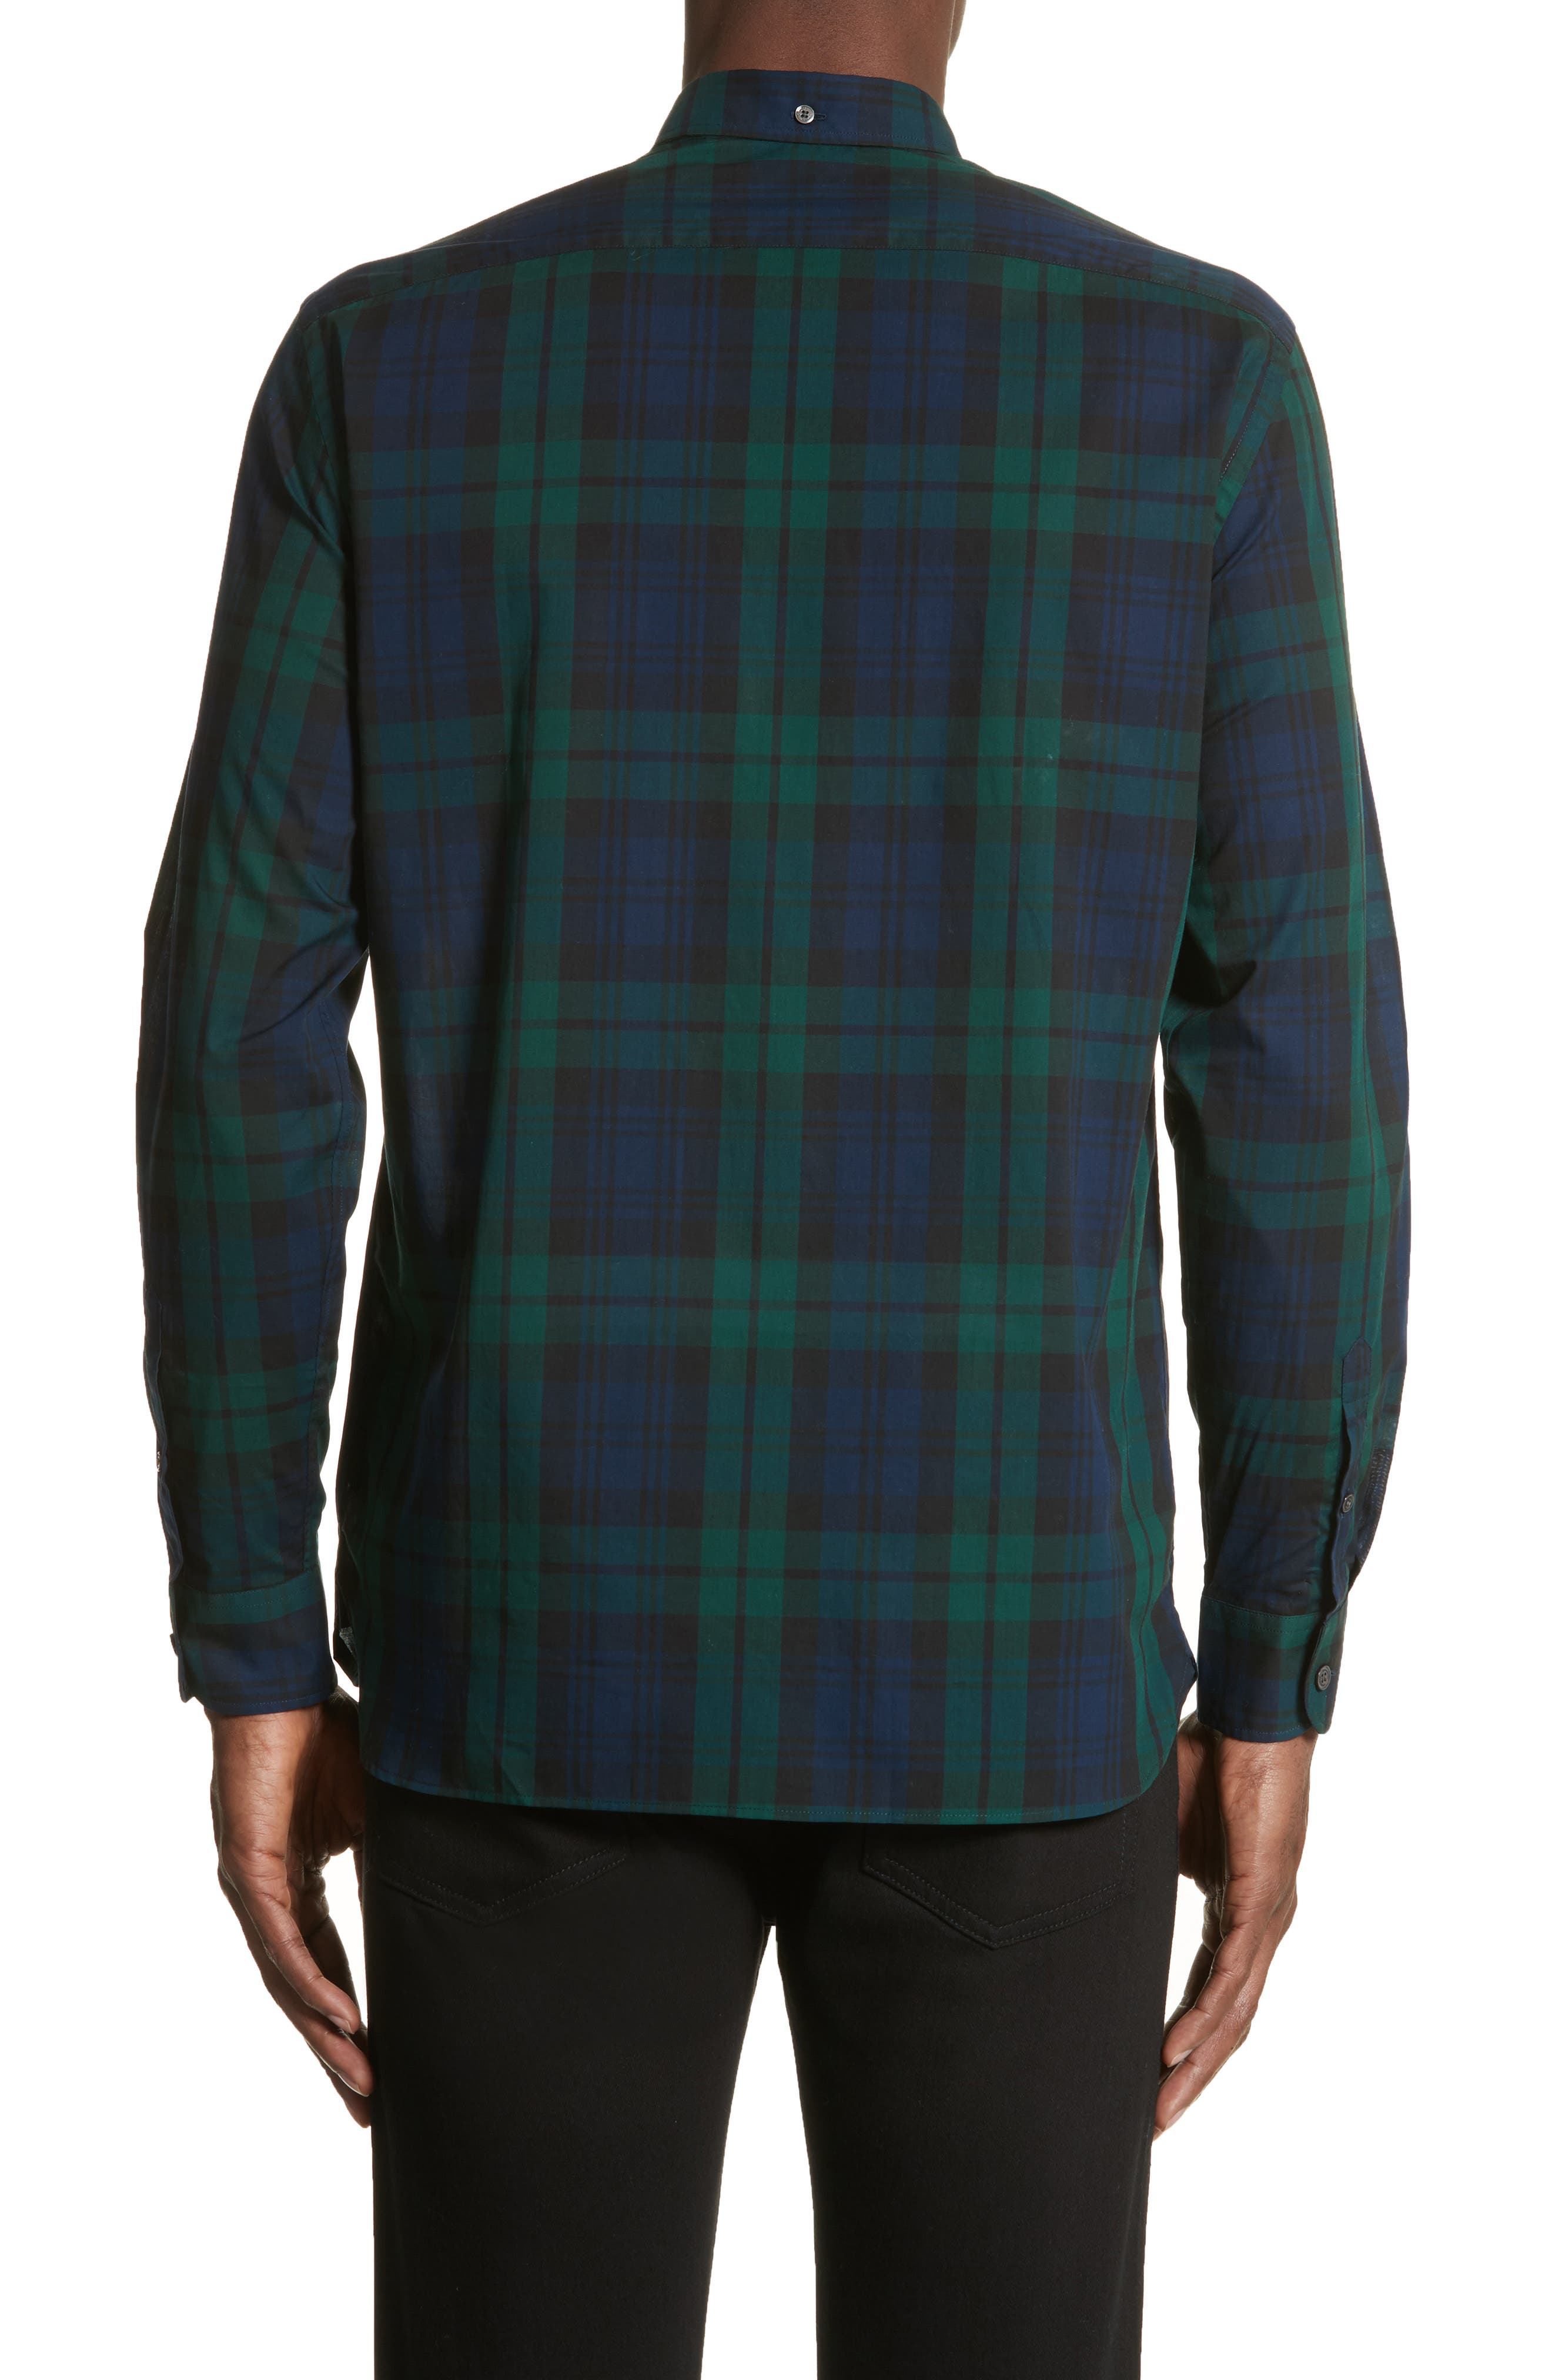 Salwick Tartan Plaid Sport Shirt,                             Alternate thumbnail 2, color,                             Navy